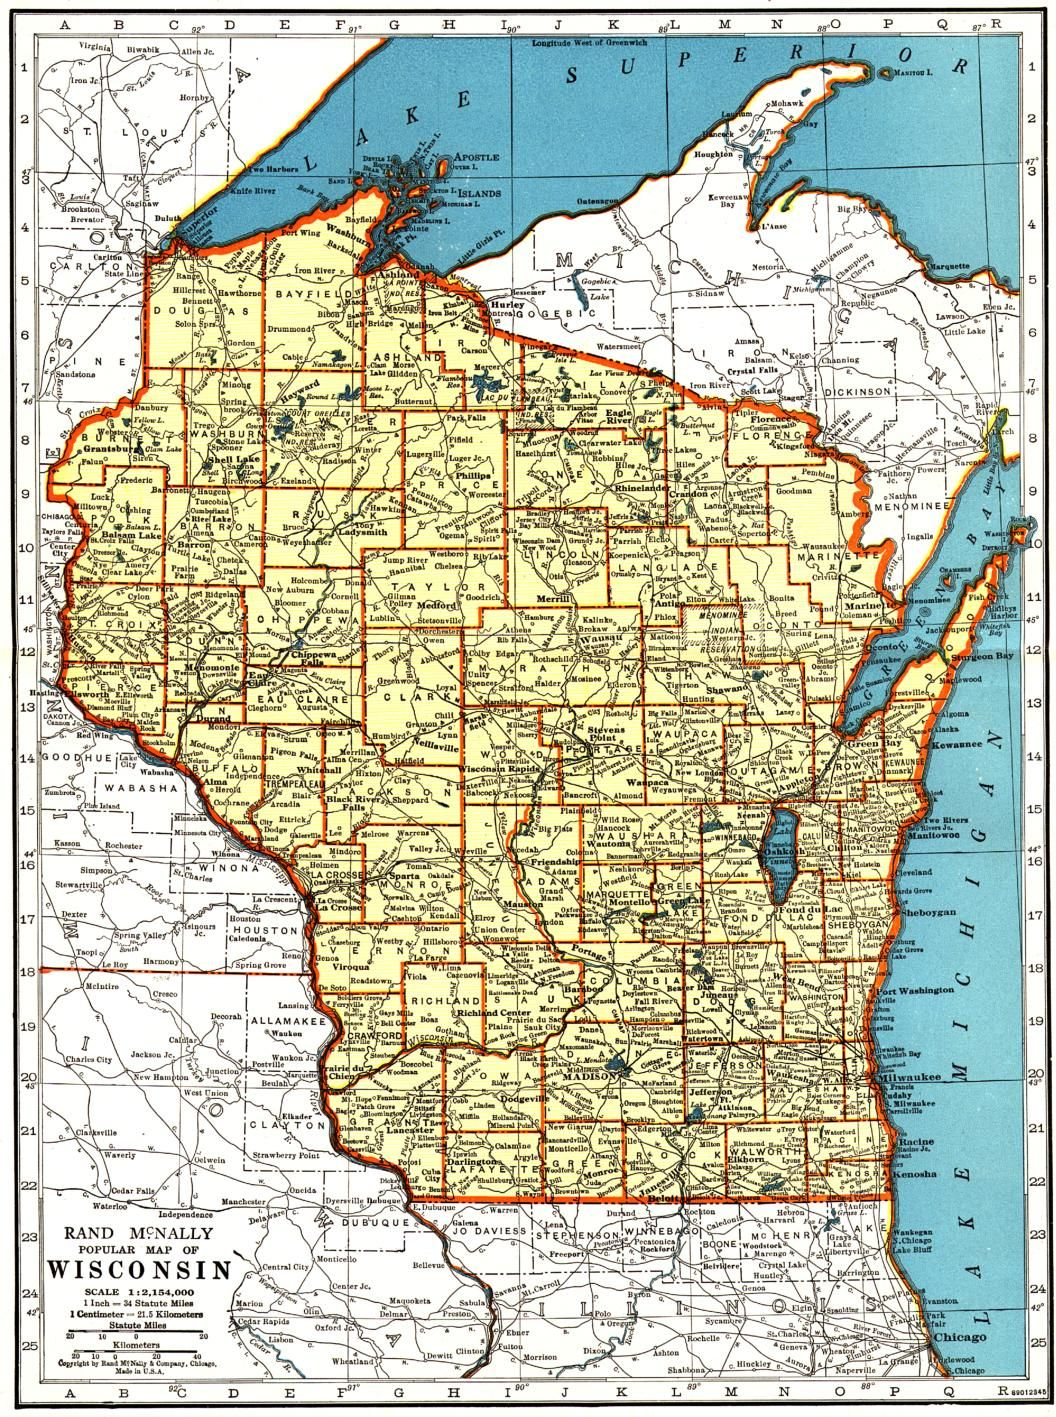 1944 Rand McNally Map of Wisconsin from the Wisconsin Digital Ibrary